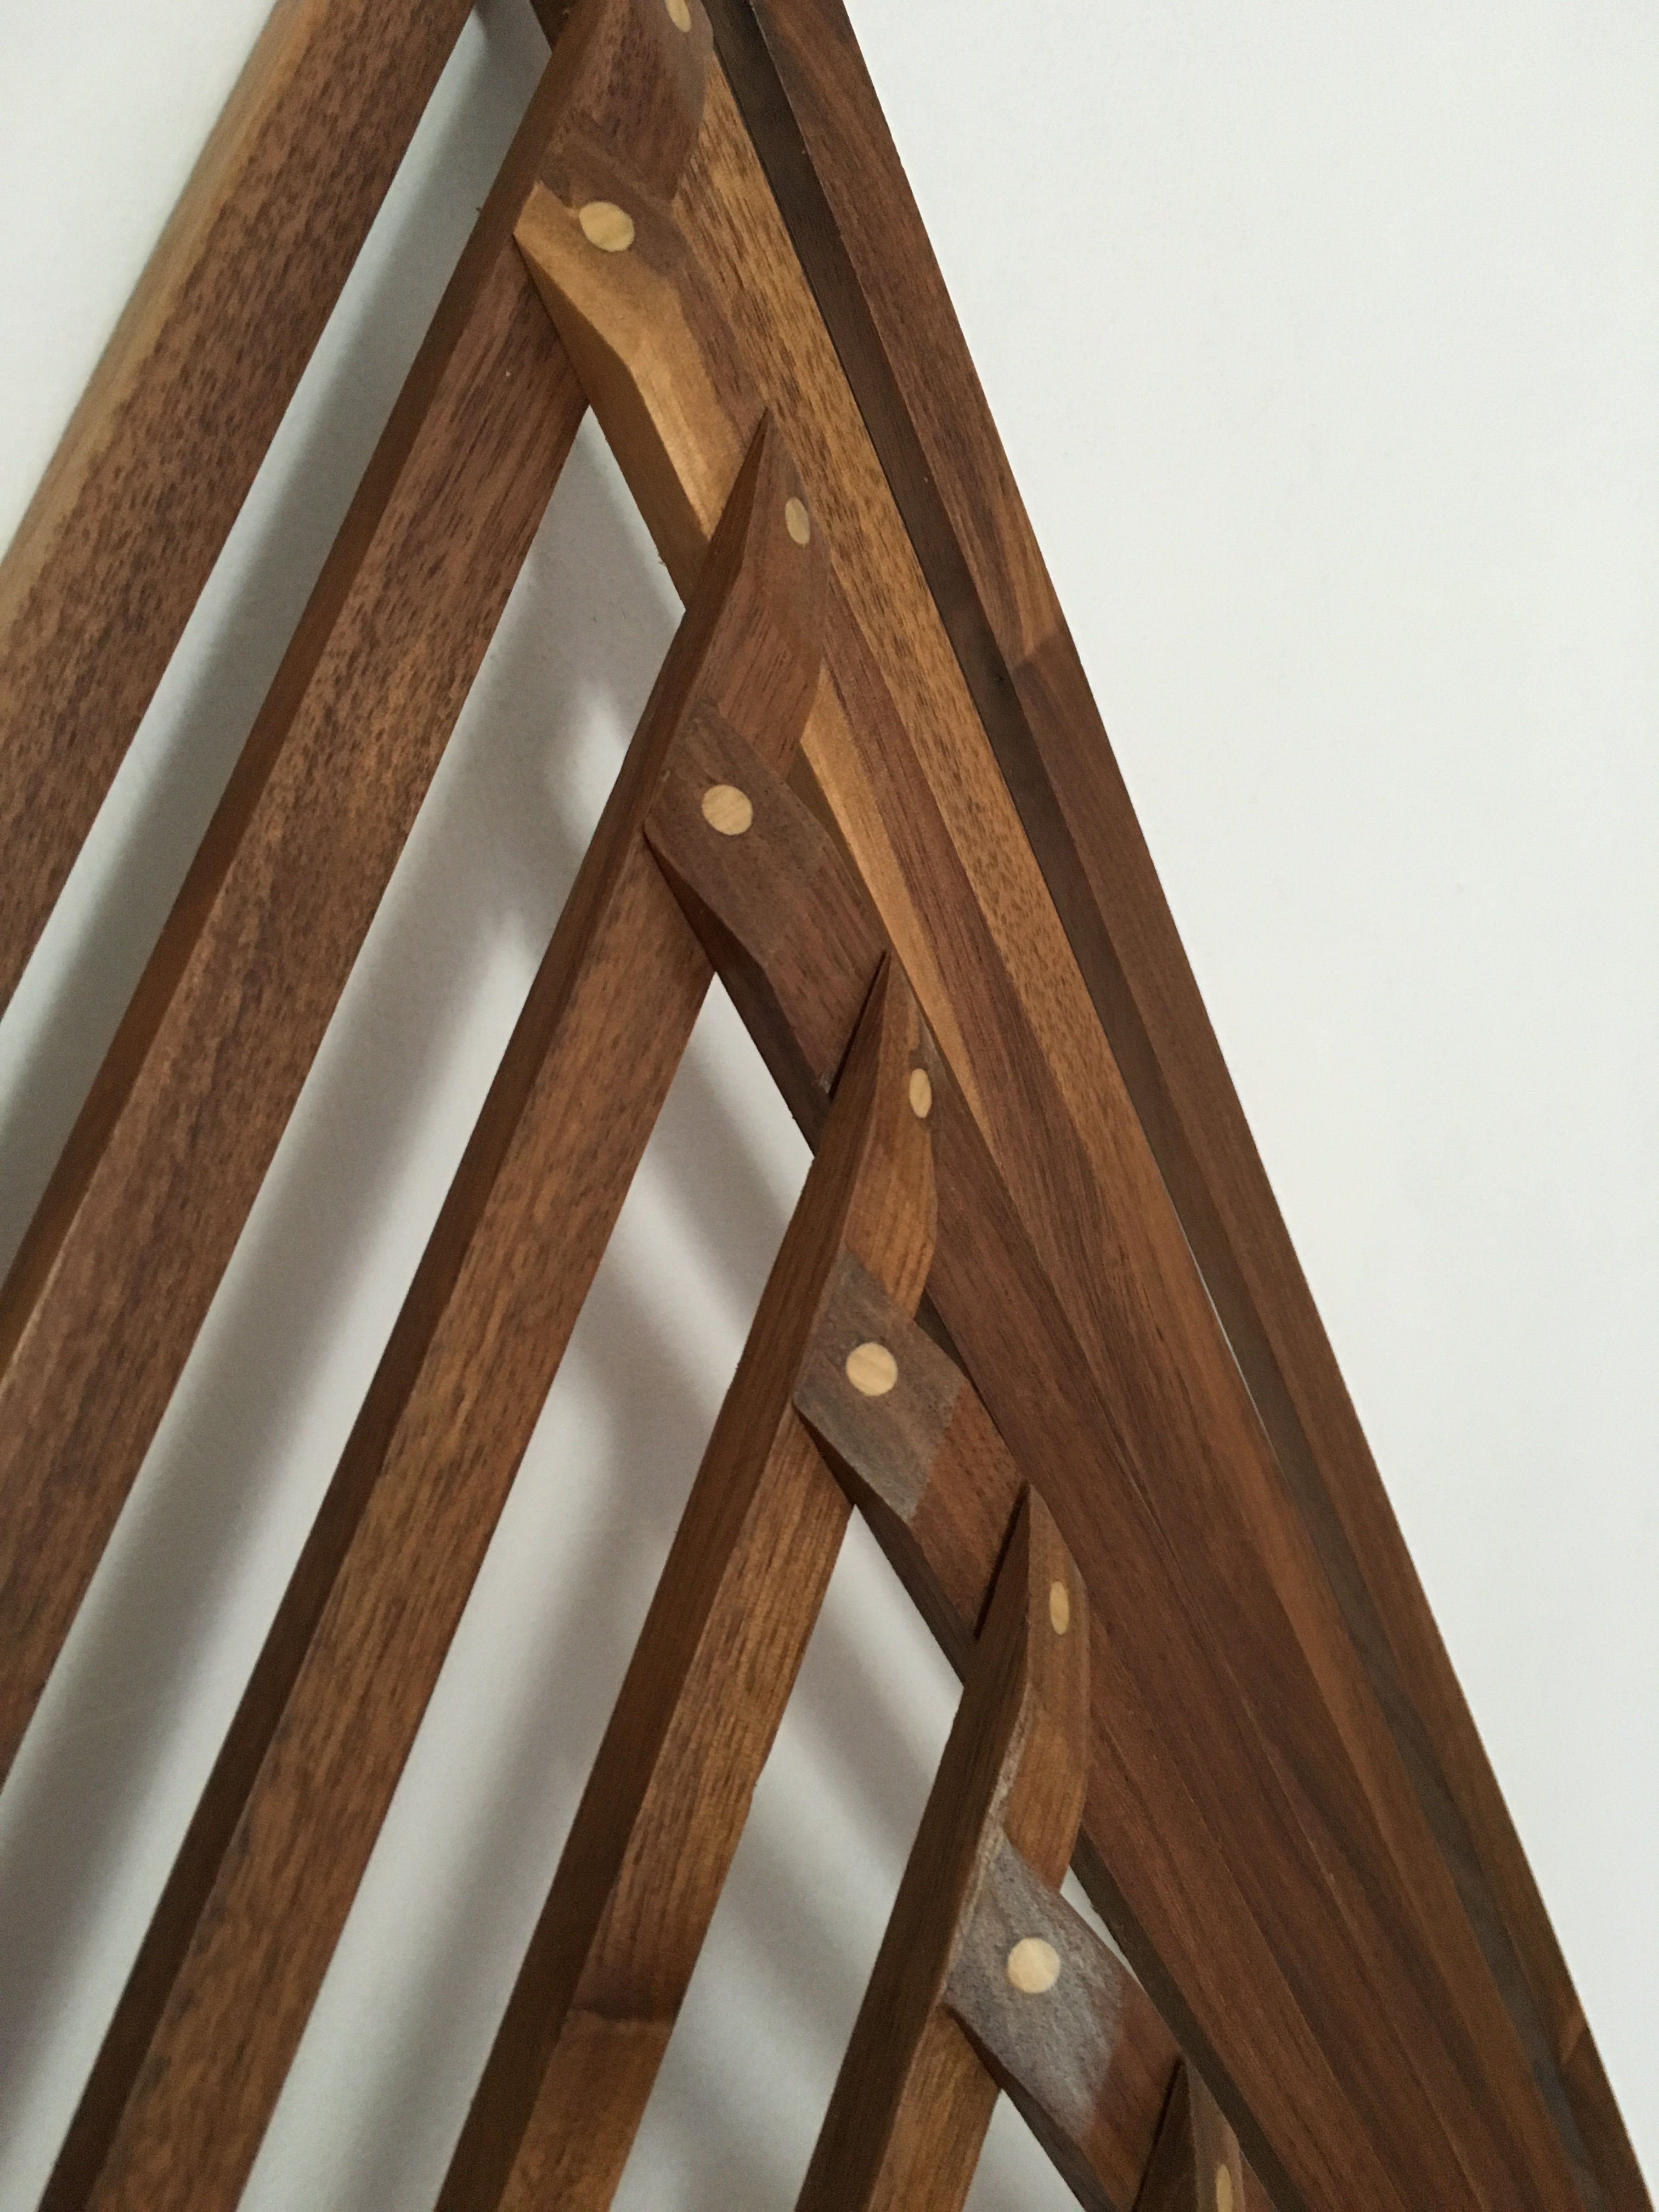 Strips of Chestnut. Doweled and glued.